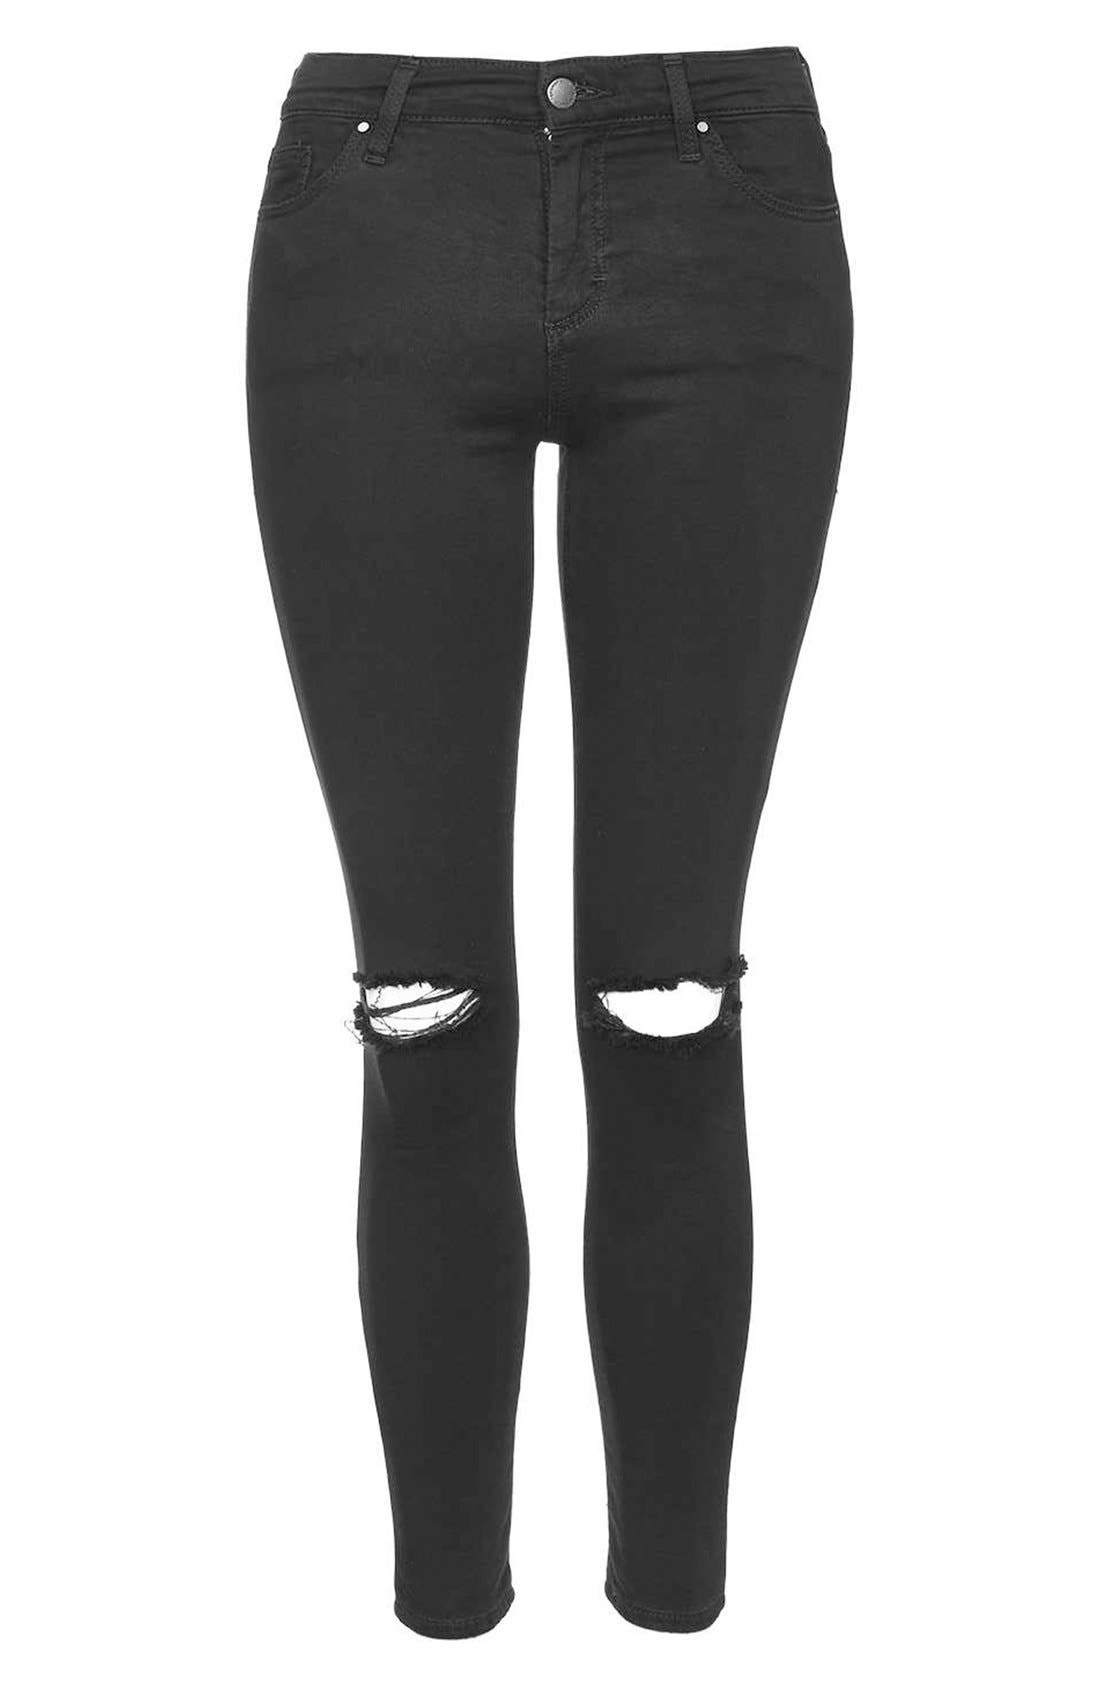 Alternate Image 4  - Topshop 'Leigh' Ripped Skinny Jeans (Petite)